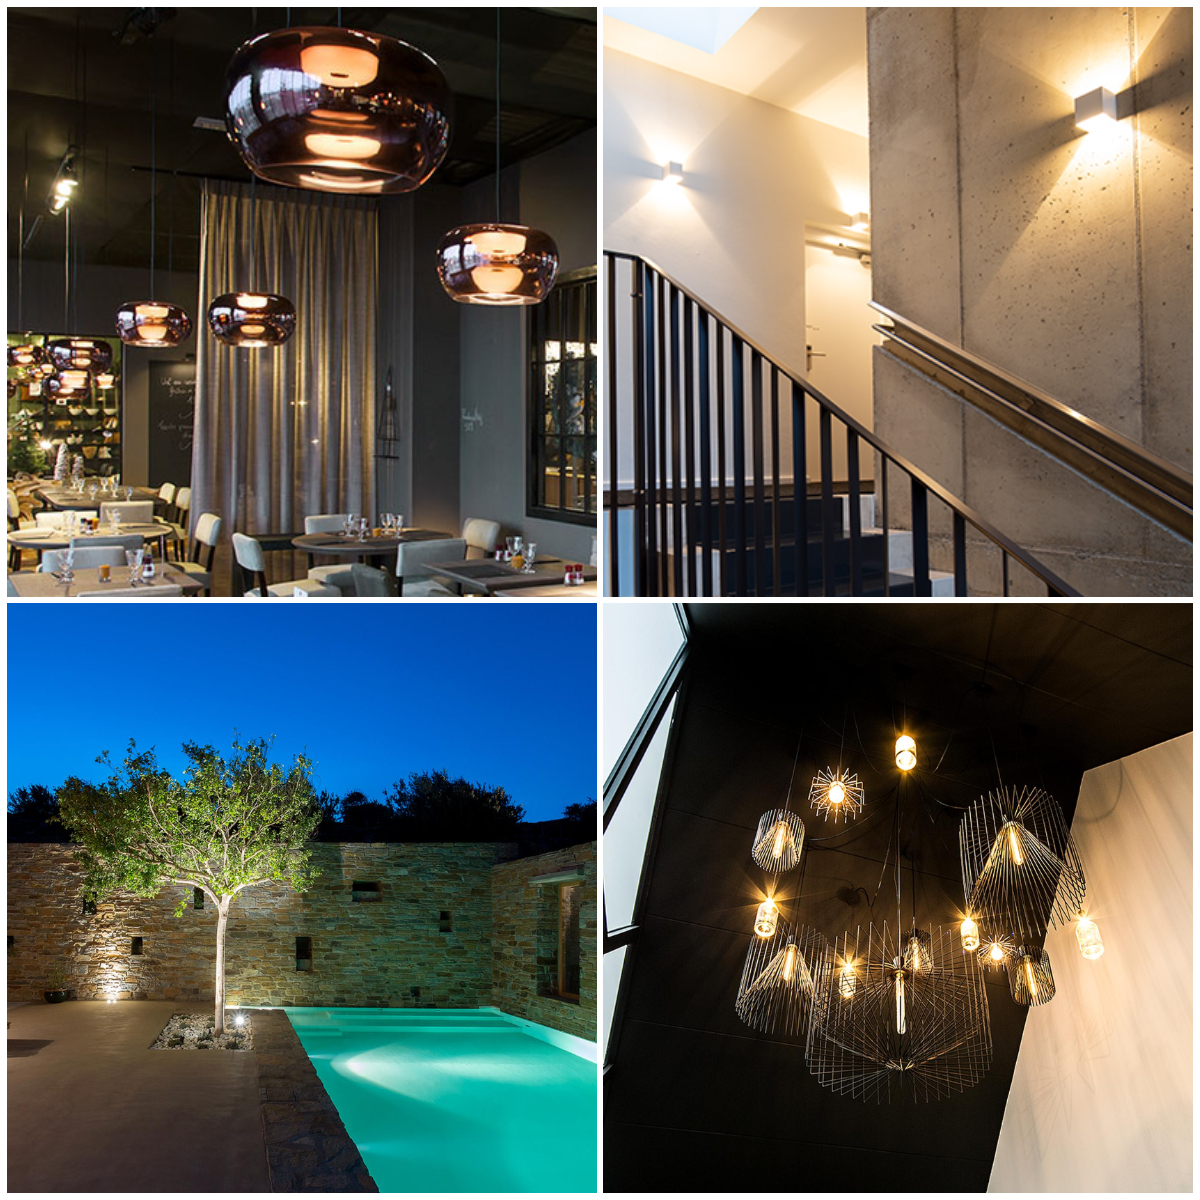 Wever & Ducrè - Lighting Design srl